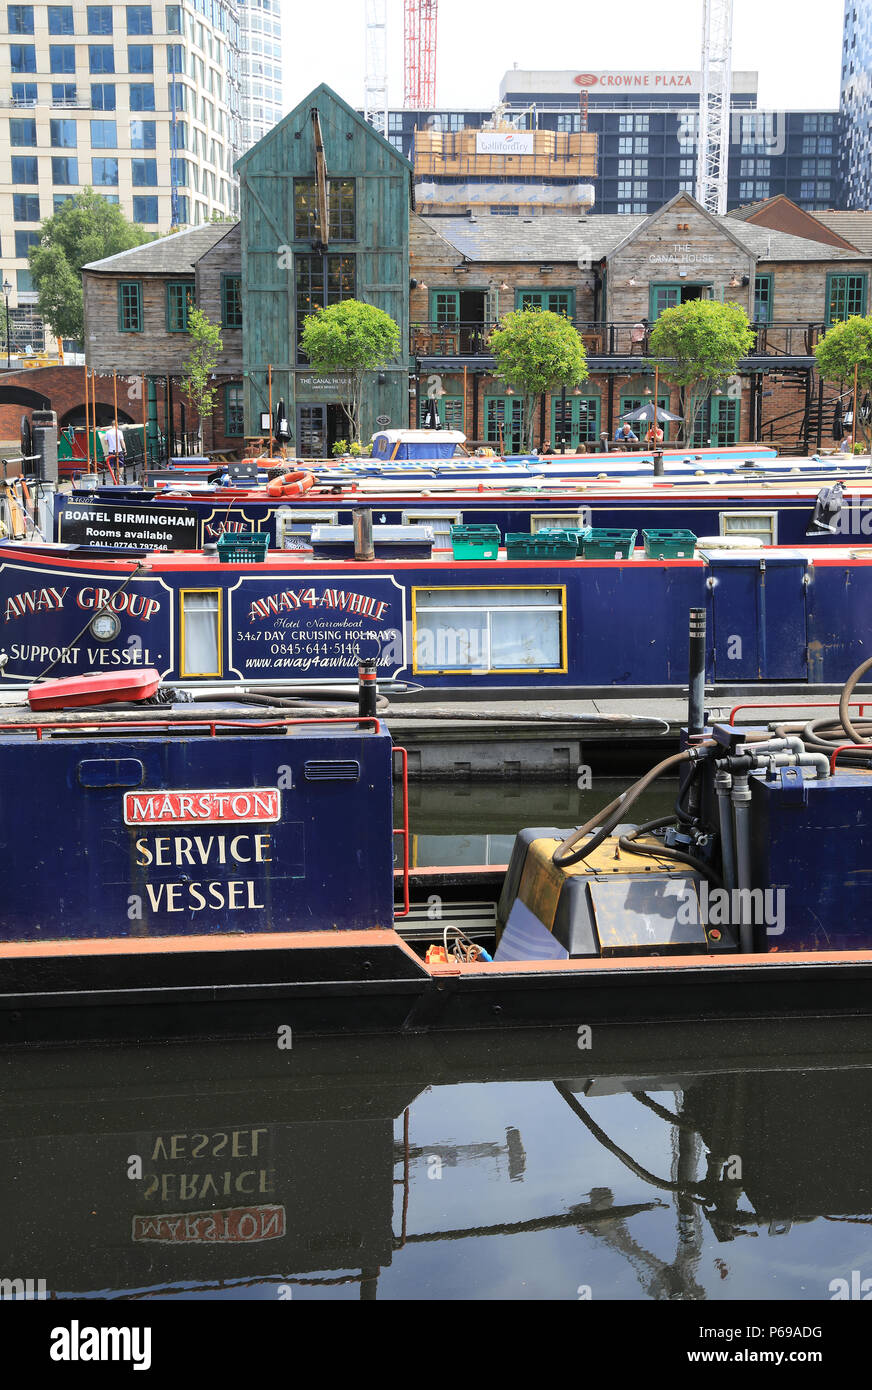 Attractive Gas Street Basin in Birmingham in the Midlands in the UK. The heart of the canal network, the towpaths are lined with bars and pubs, UK Stock Photo